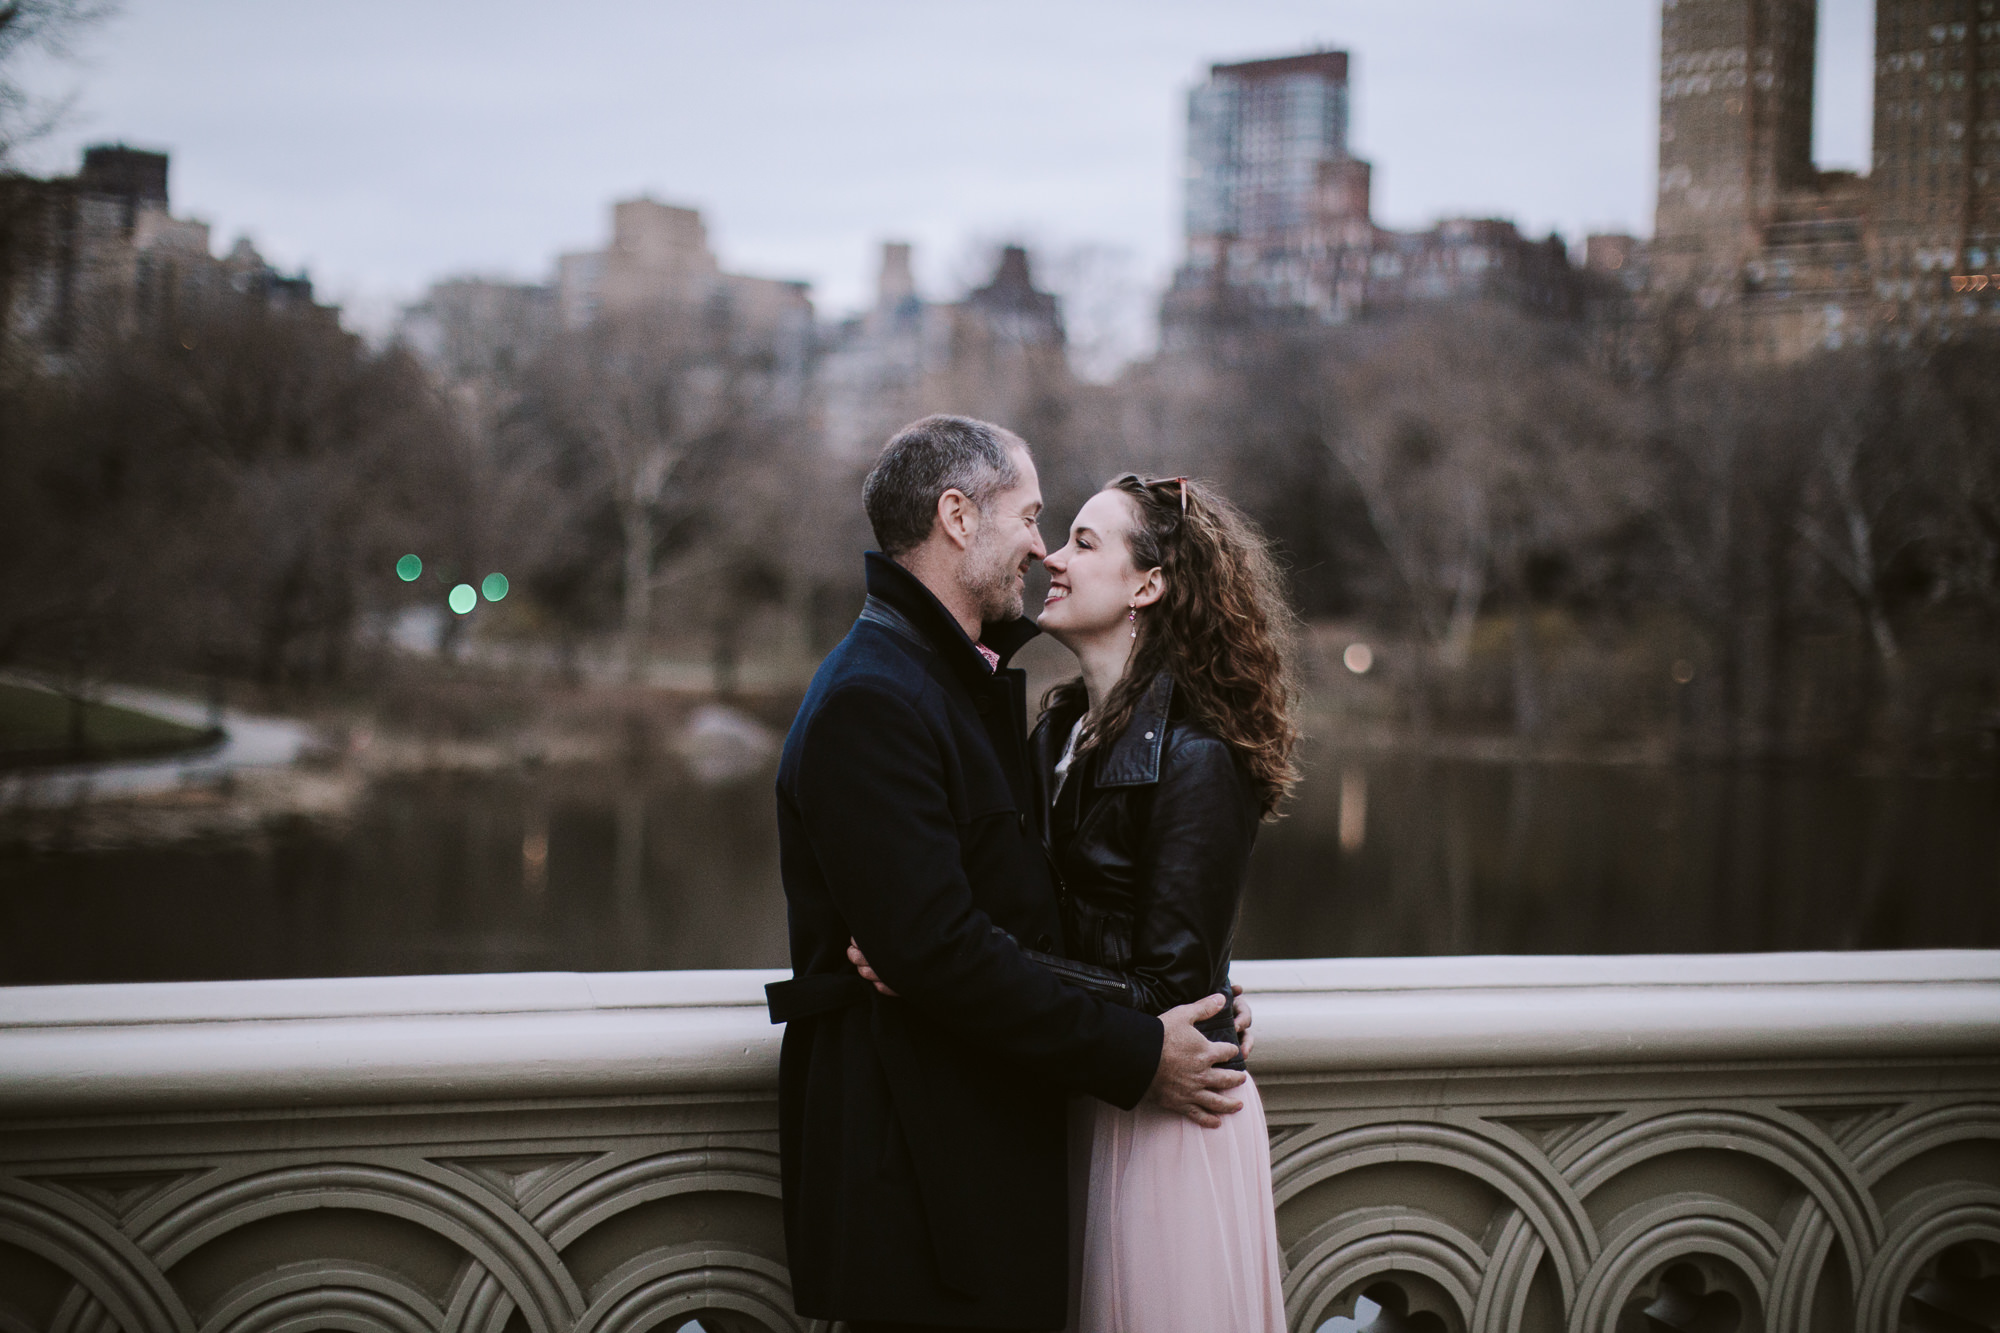 nyc_wedding_photographer_alfonso_flores-42.jpg